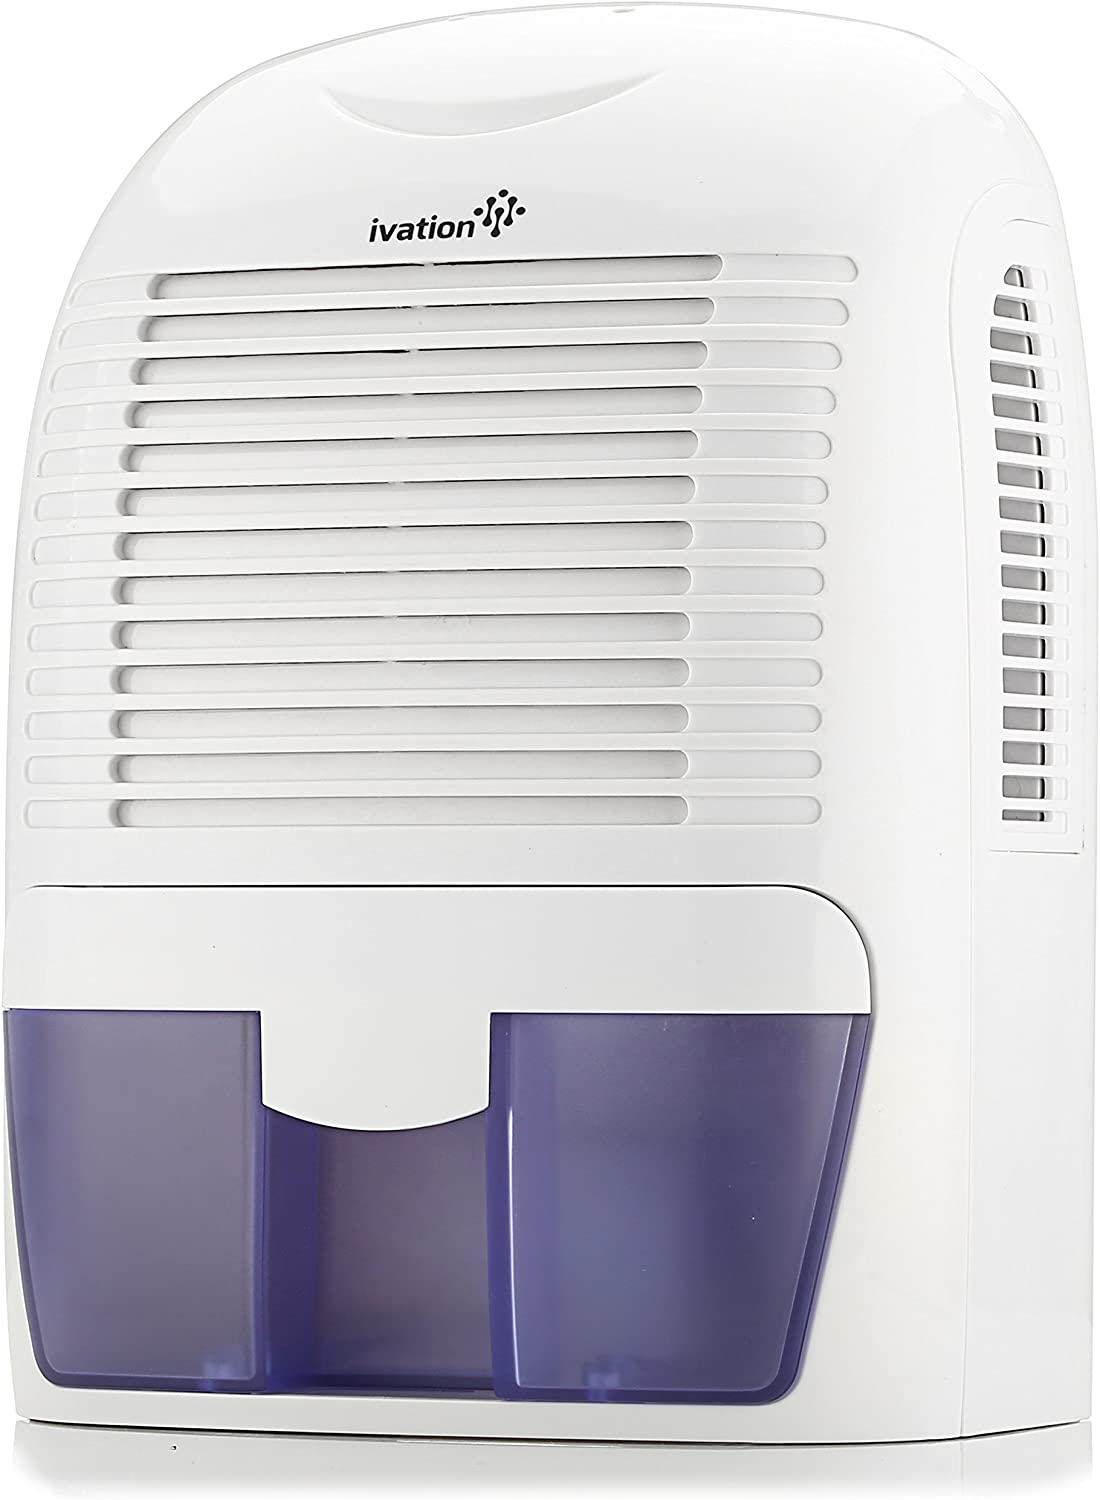 Ivation GDM30 Powerful Mid-Size Thermo-Electric Dehumidifier – Quietly Gathers Up to 20oz. of Water per Day – for Spaces Up to 2,200 Cubic Feet